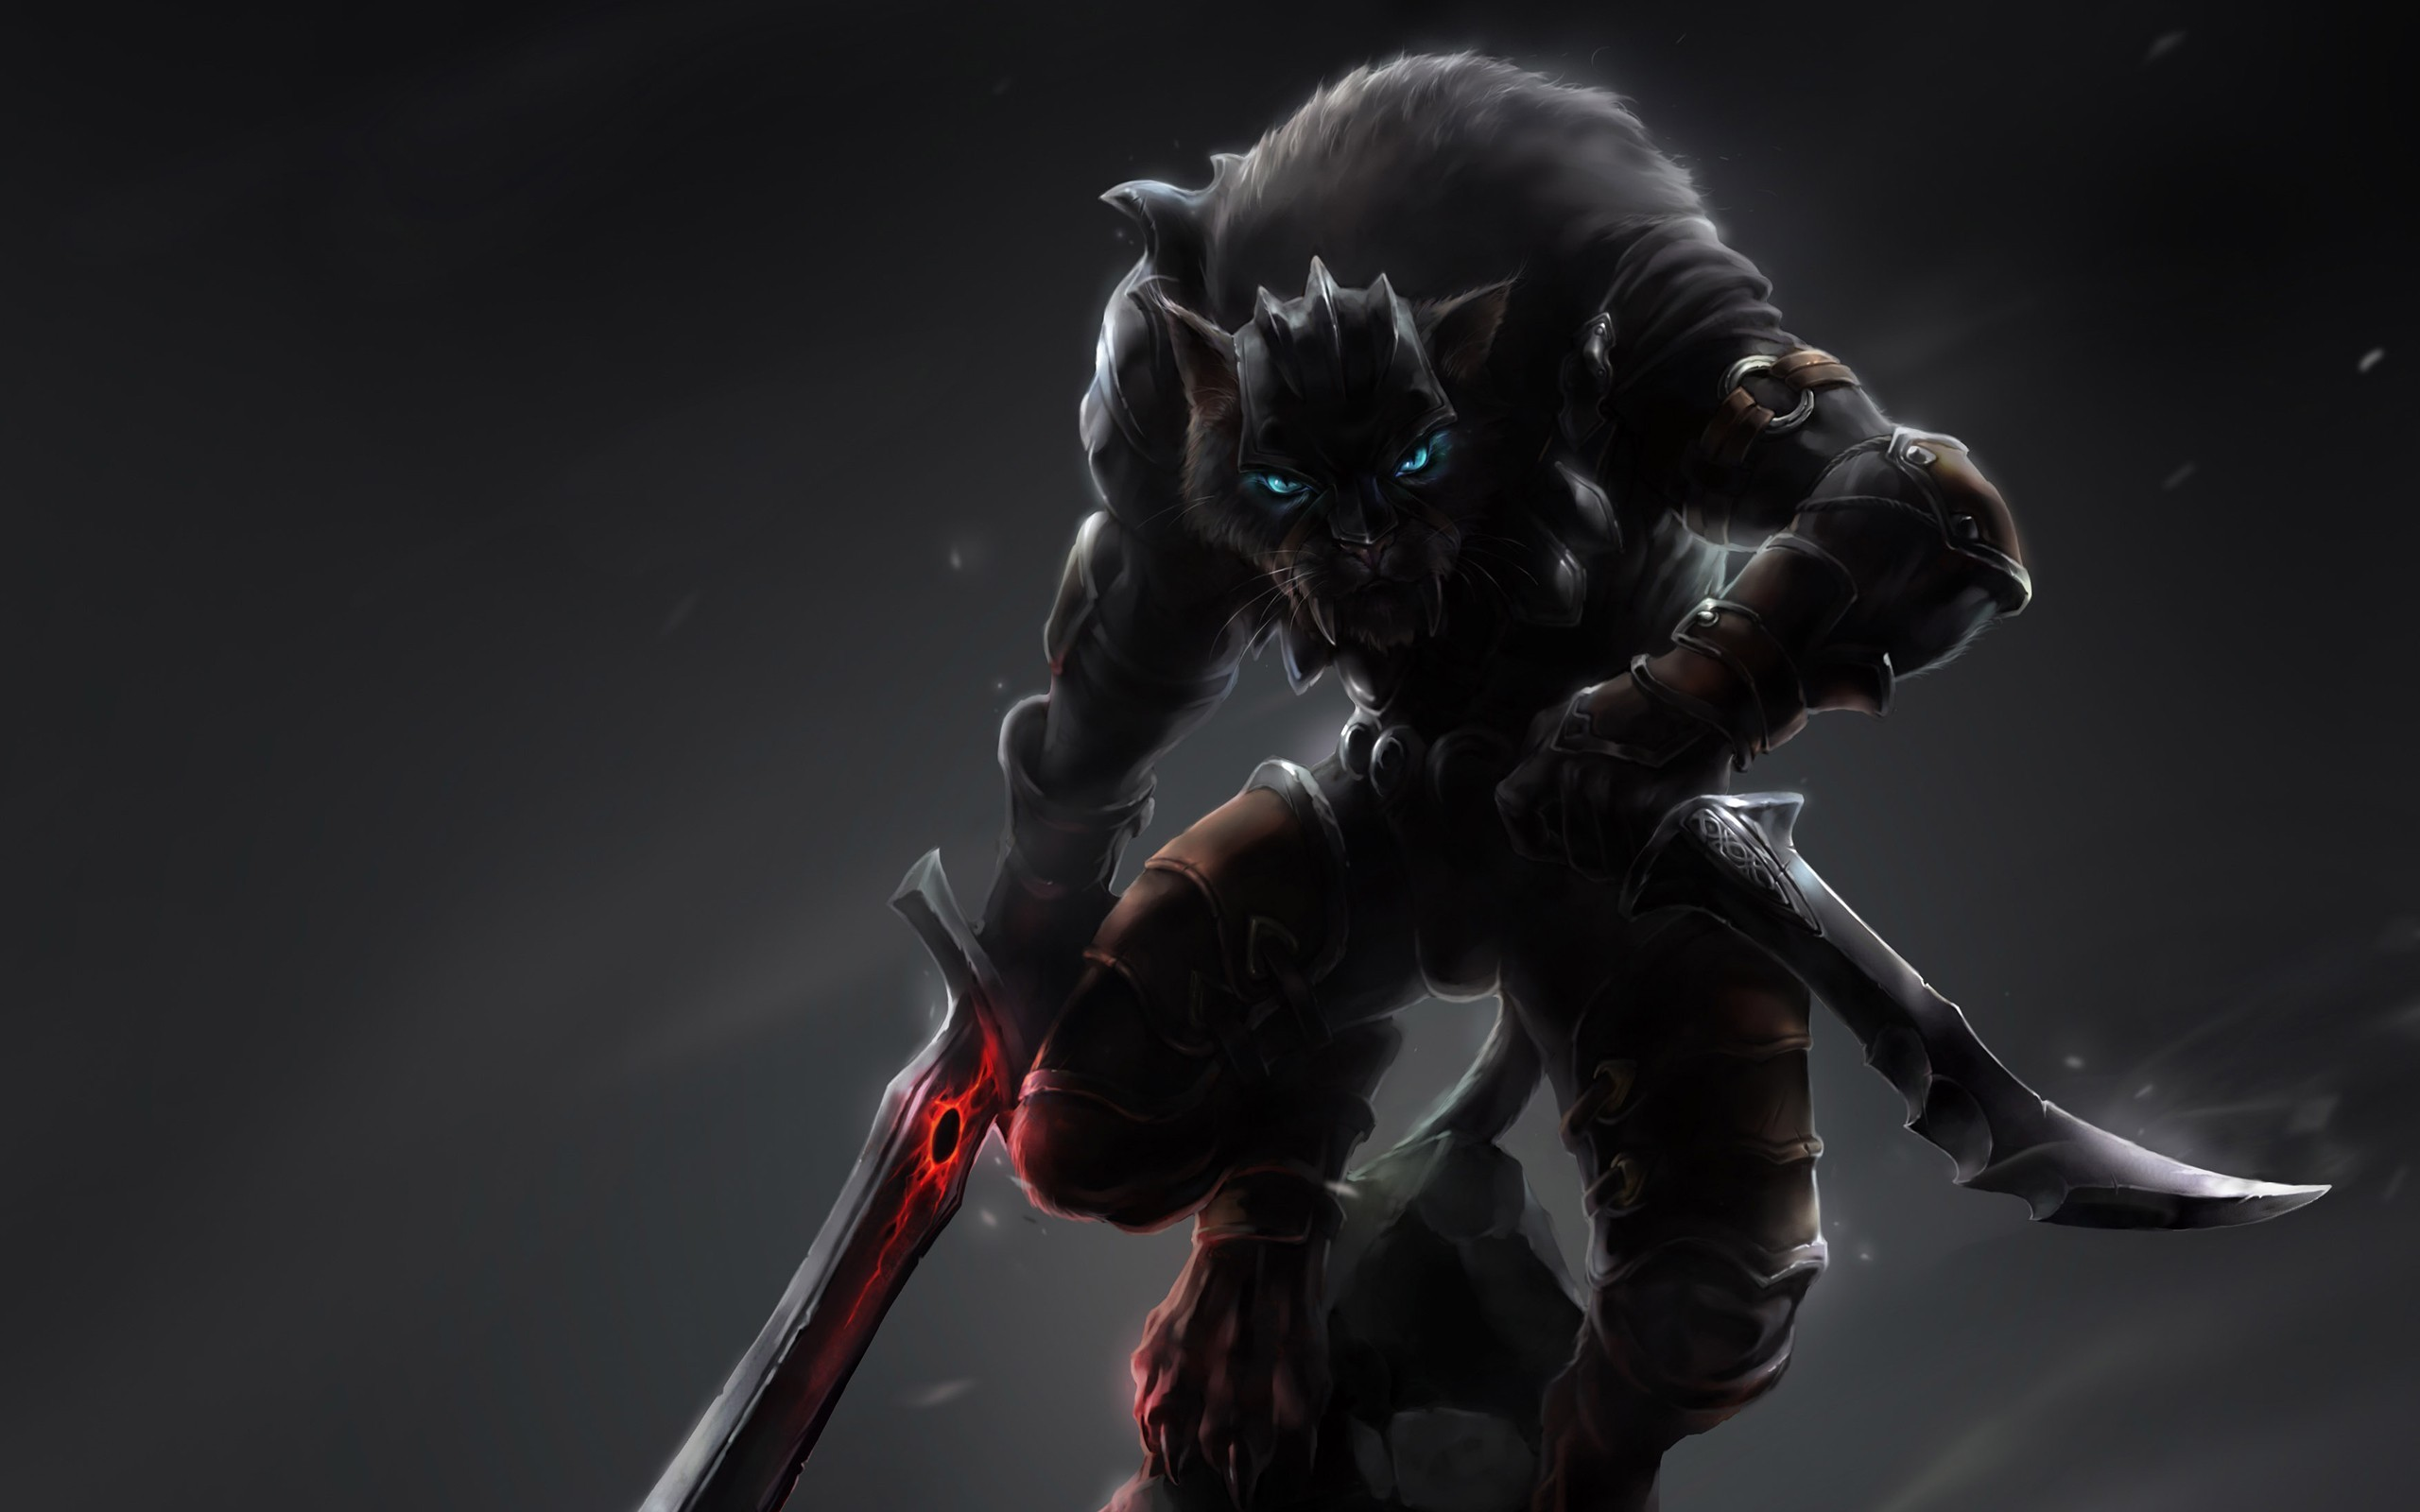 pictures of fantasy cats   Fantasy feline warrior Wallpapers Pictures  Photos Images